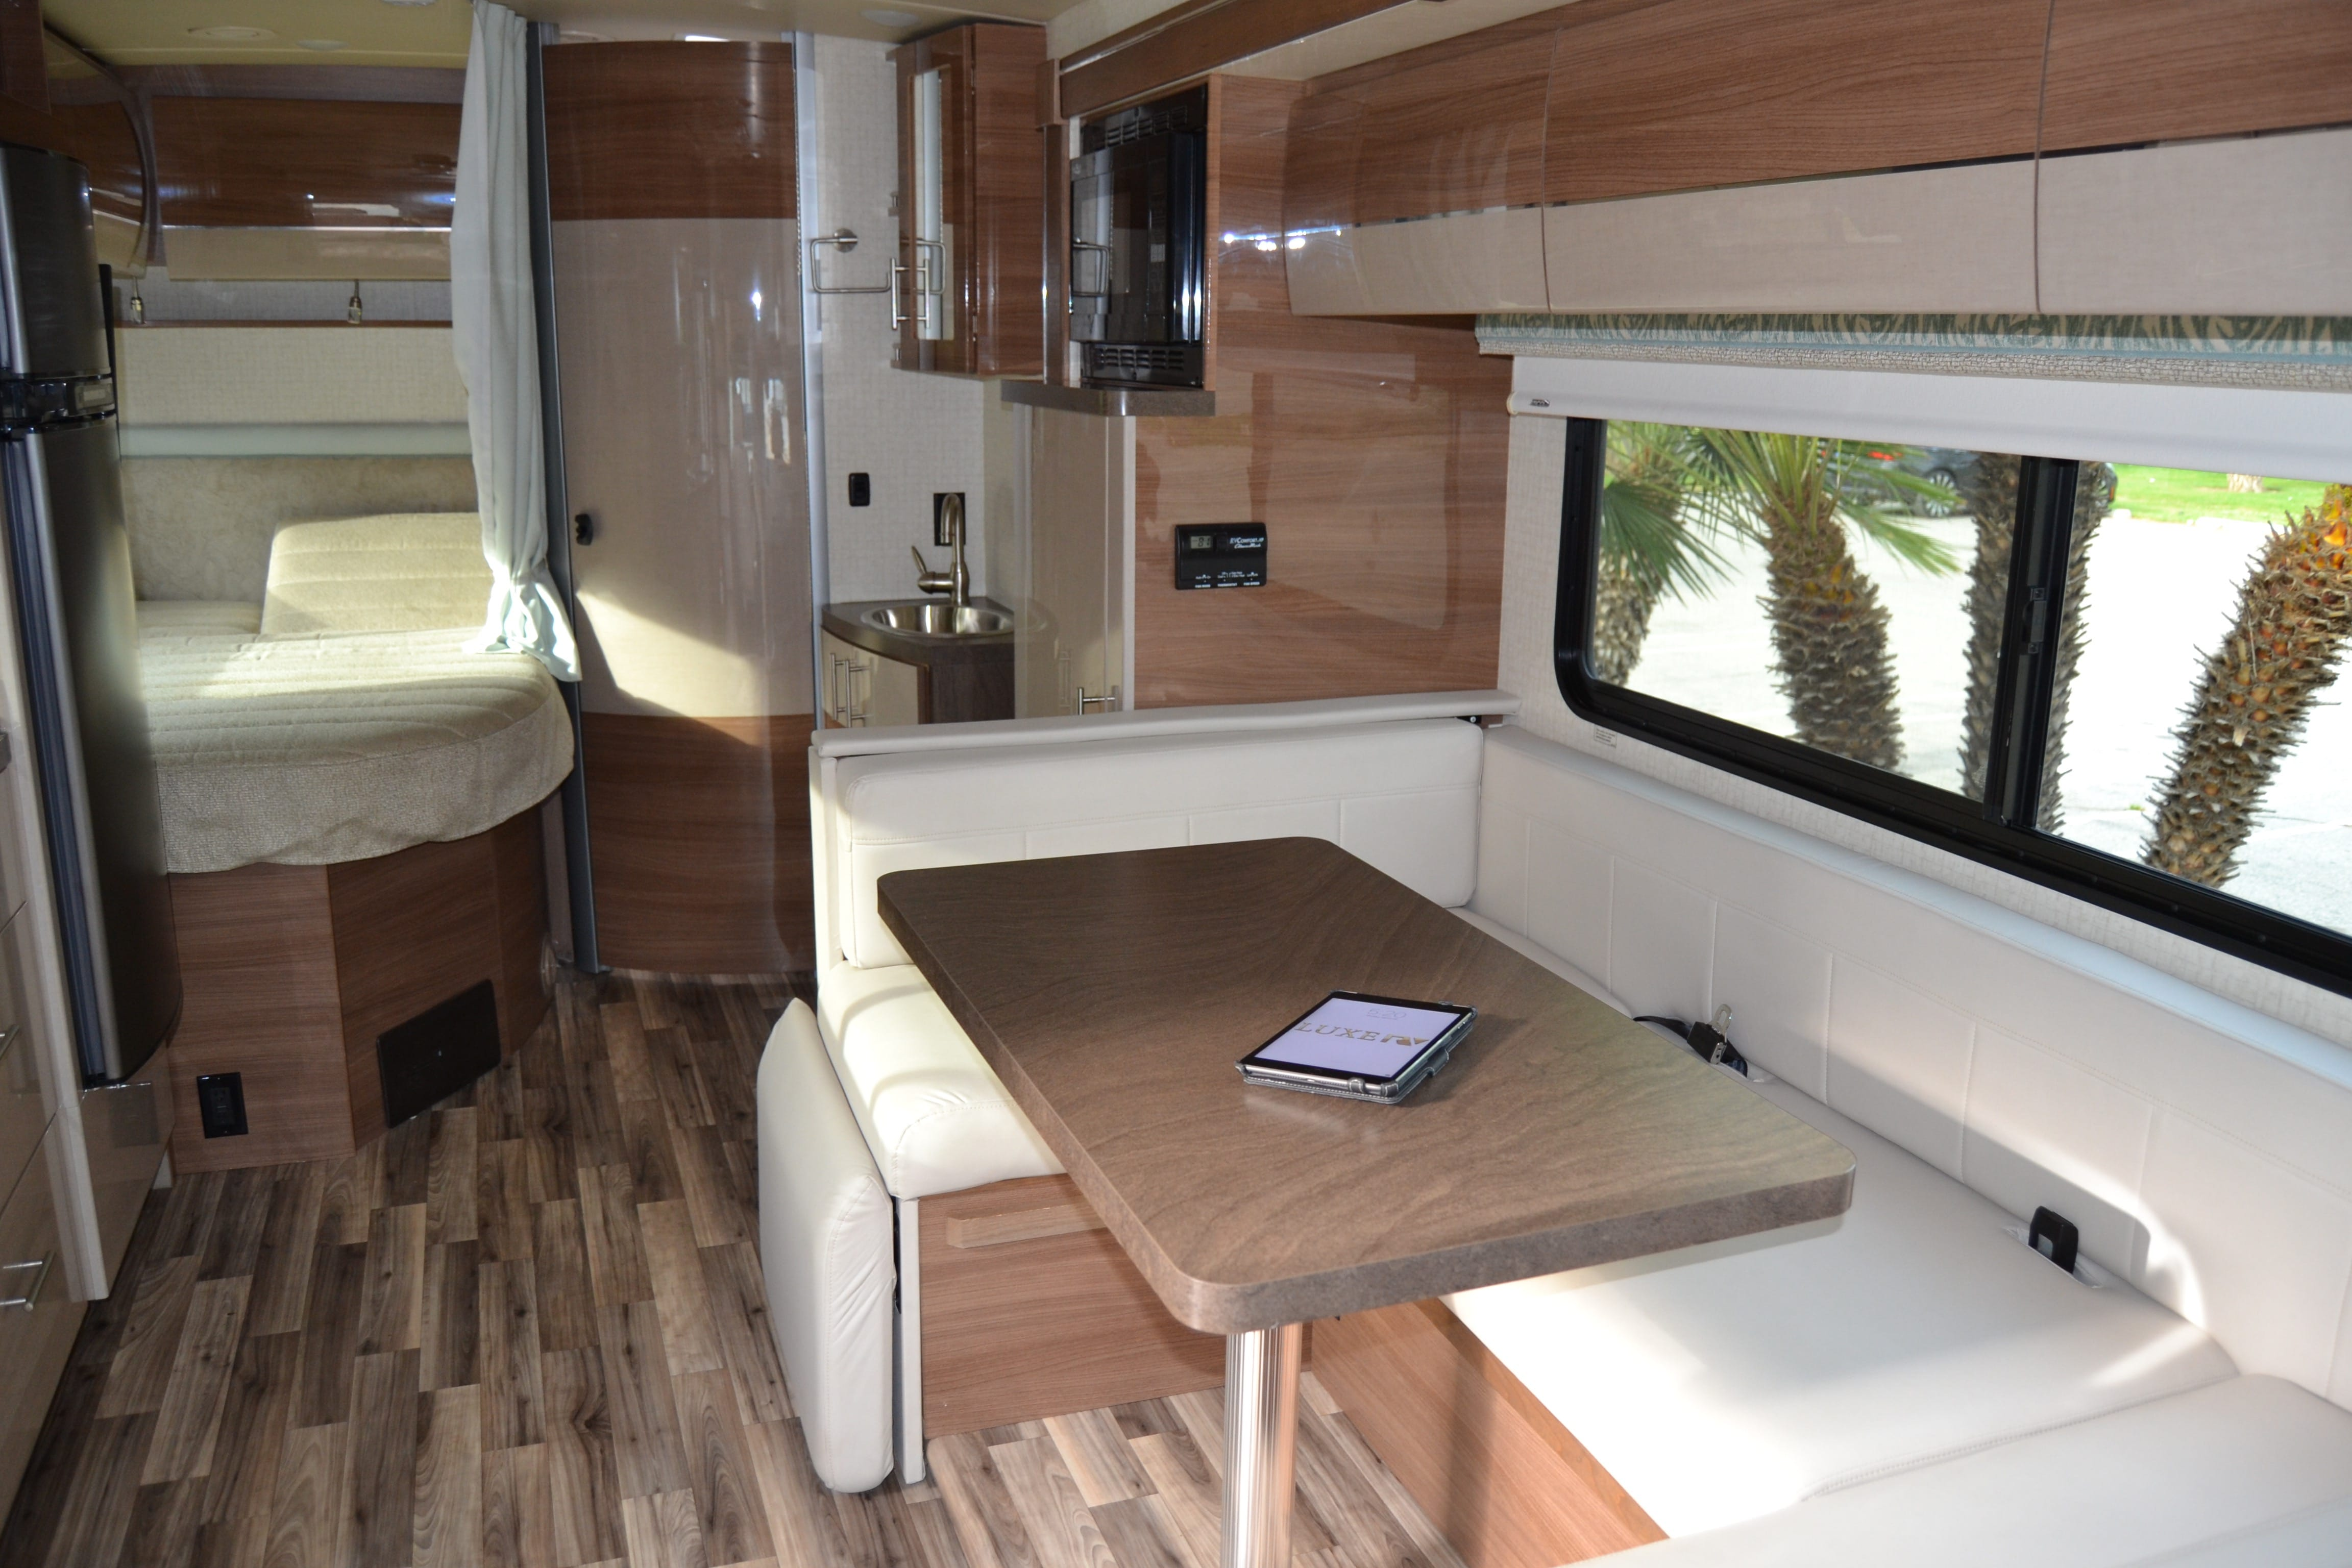 Rent an RV from Luxe RV Rentals